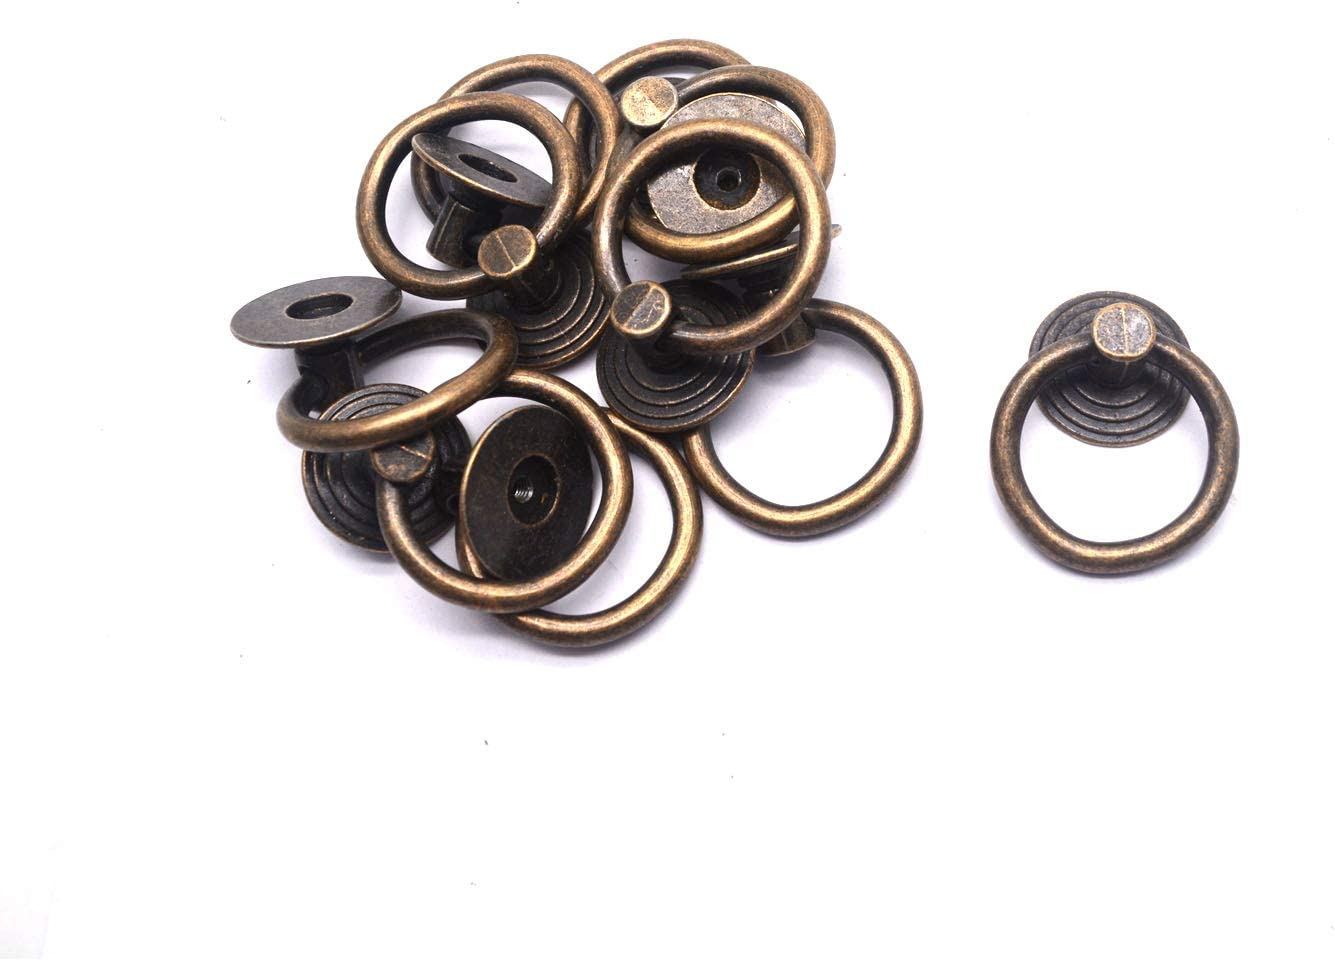 MTMTOOL 10 Pack Cabinet Ring Pulls Vintage Cupboard Drawer Rings Pulls Knob Drop Ring Pull Handles with Screws Bronze Tone